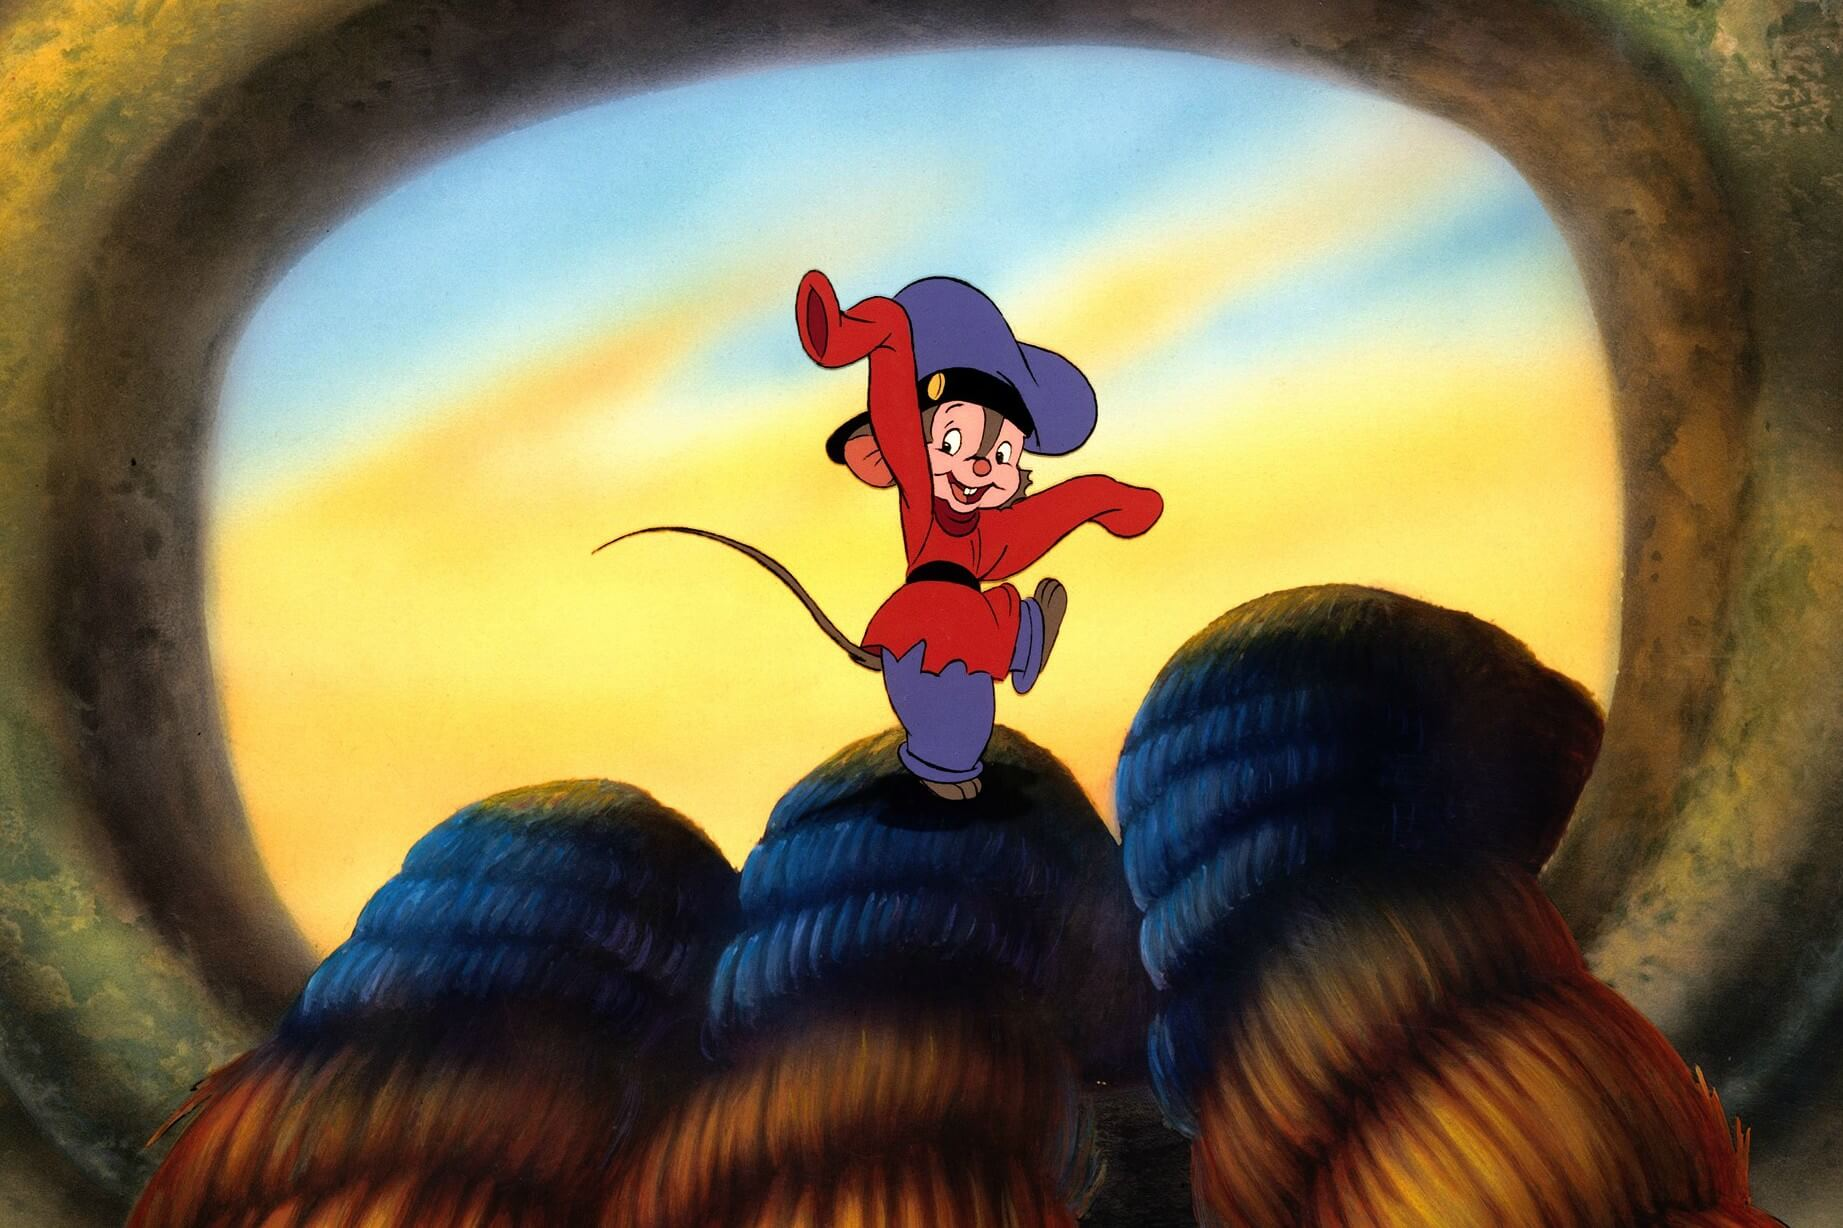 Summer Movies At Emagine – An American Tail